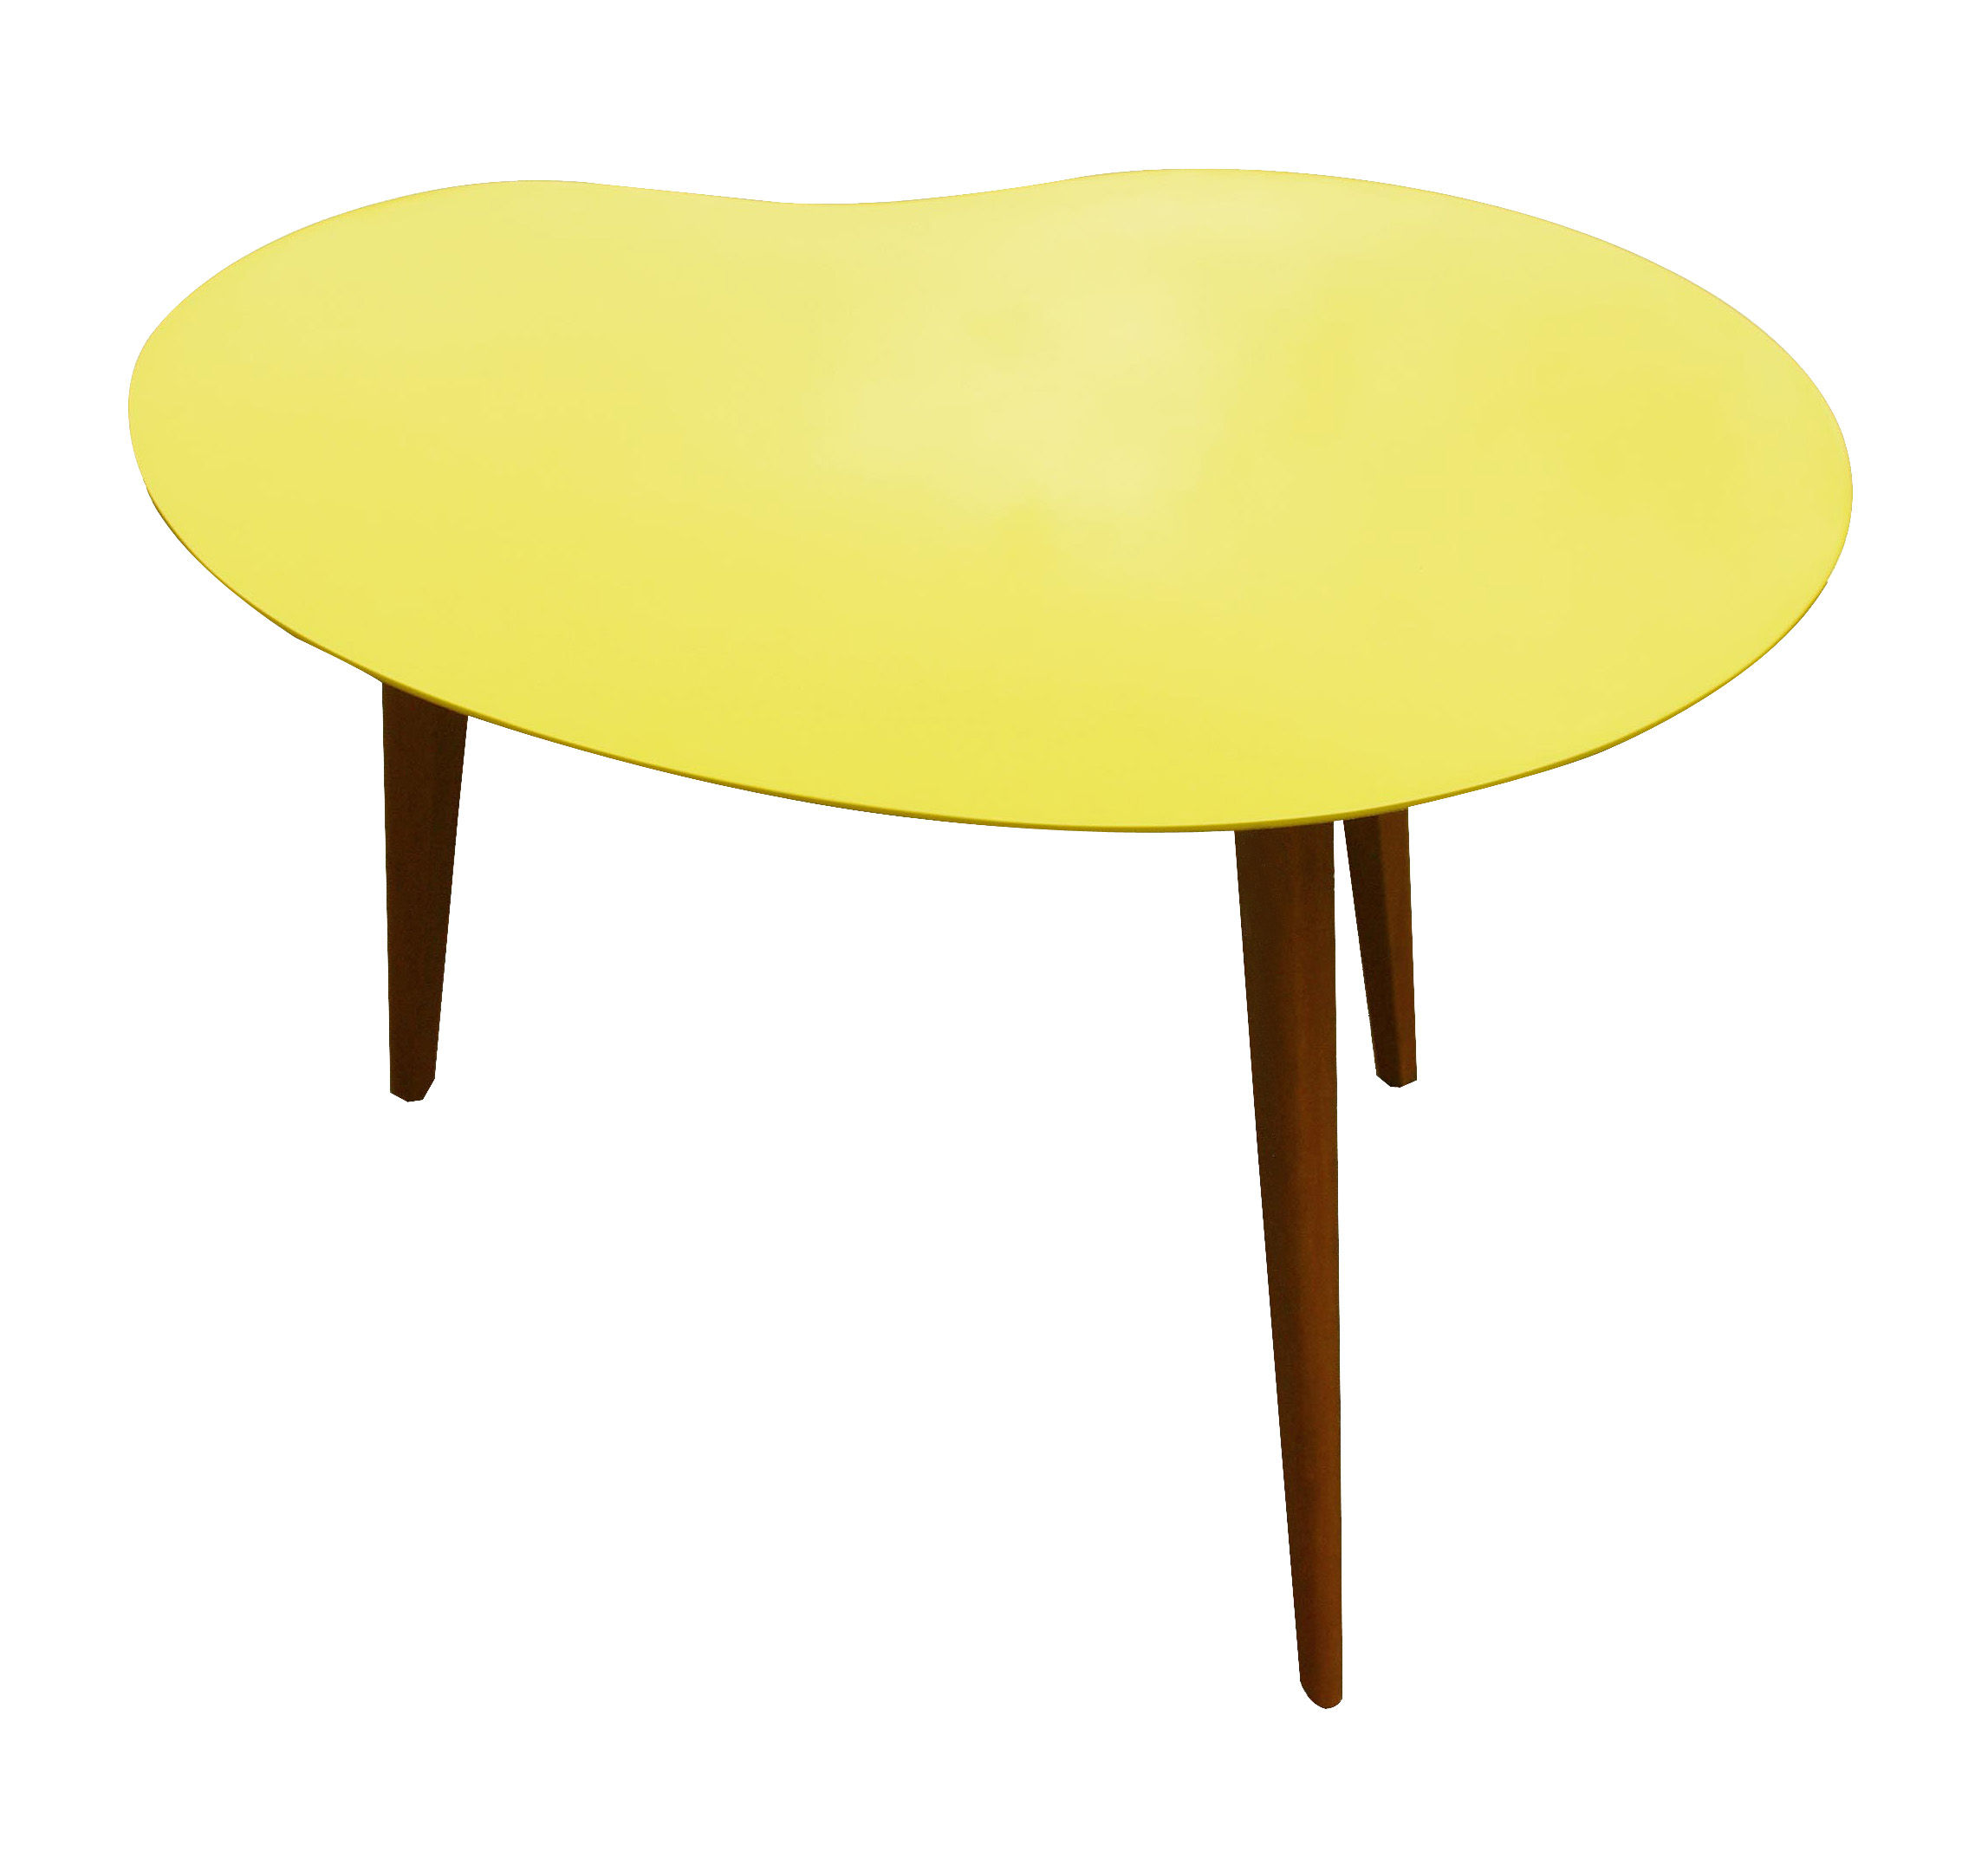 Table basse lalinde haricot small pieds bois jaune for Pieds de table basse design